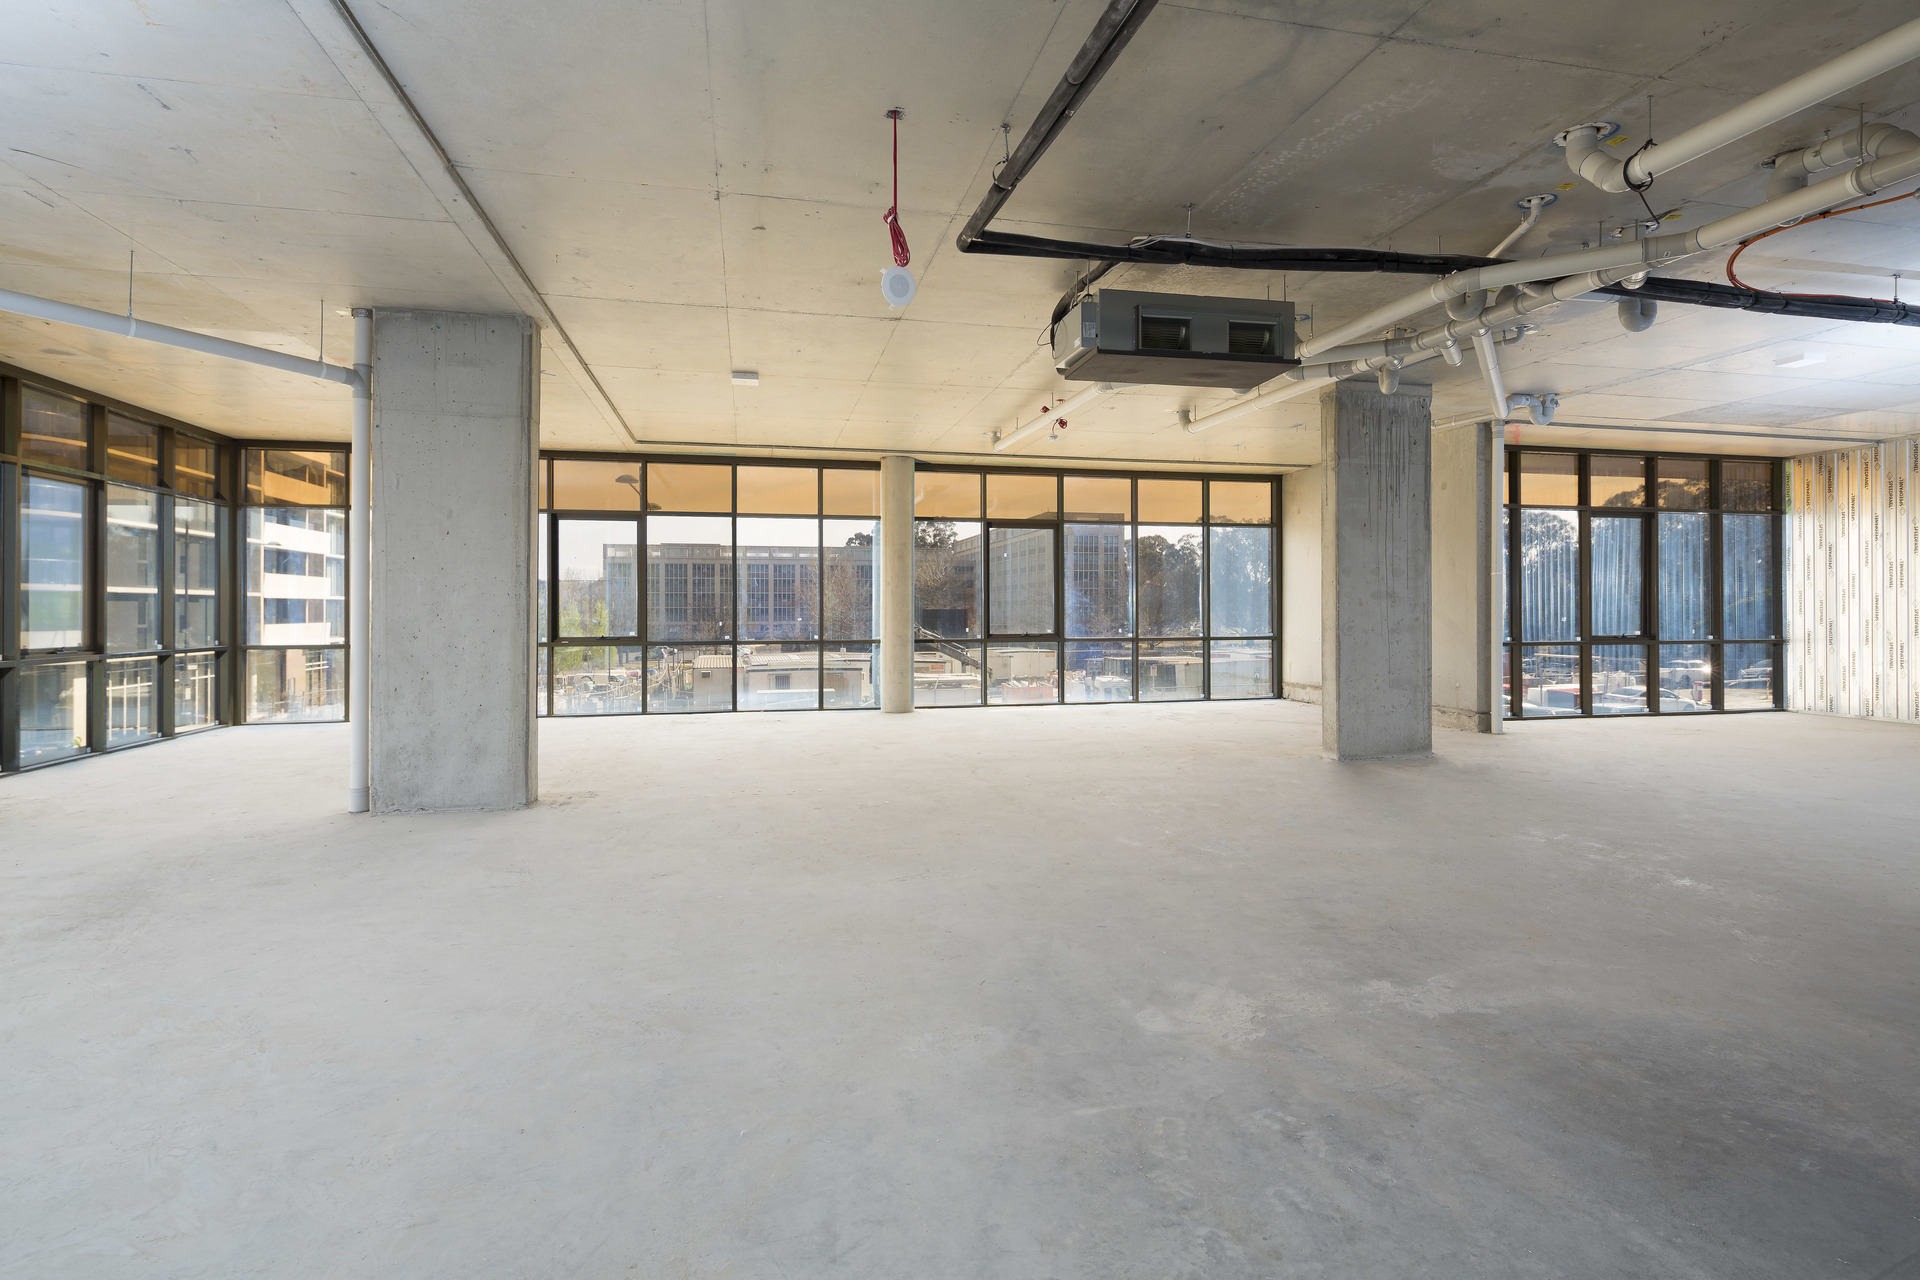 BOUTIQUE OFFICE SPACES IN CAMPBELL 5 PRECINCT